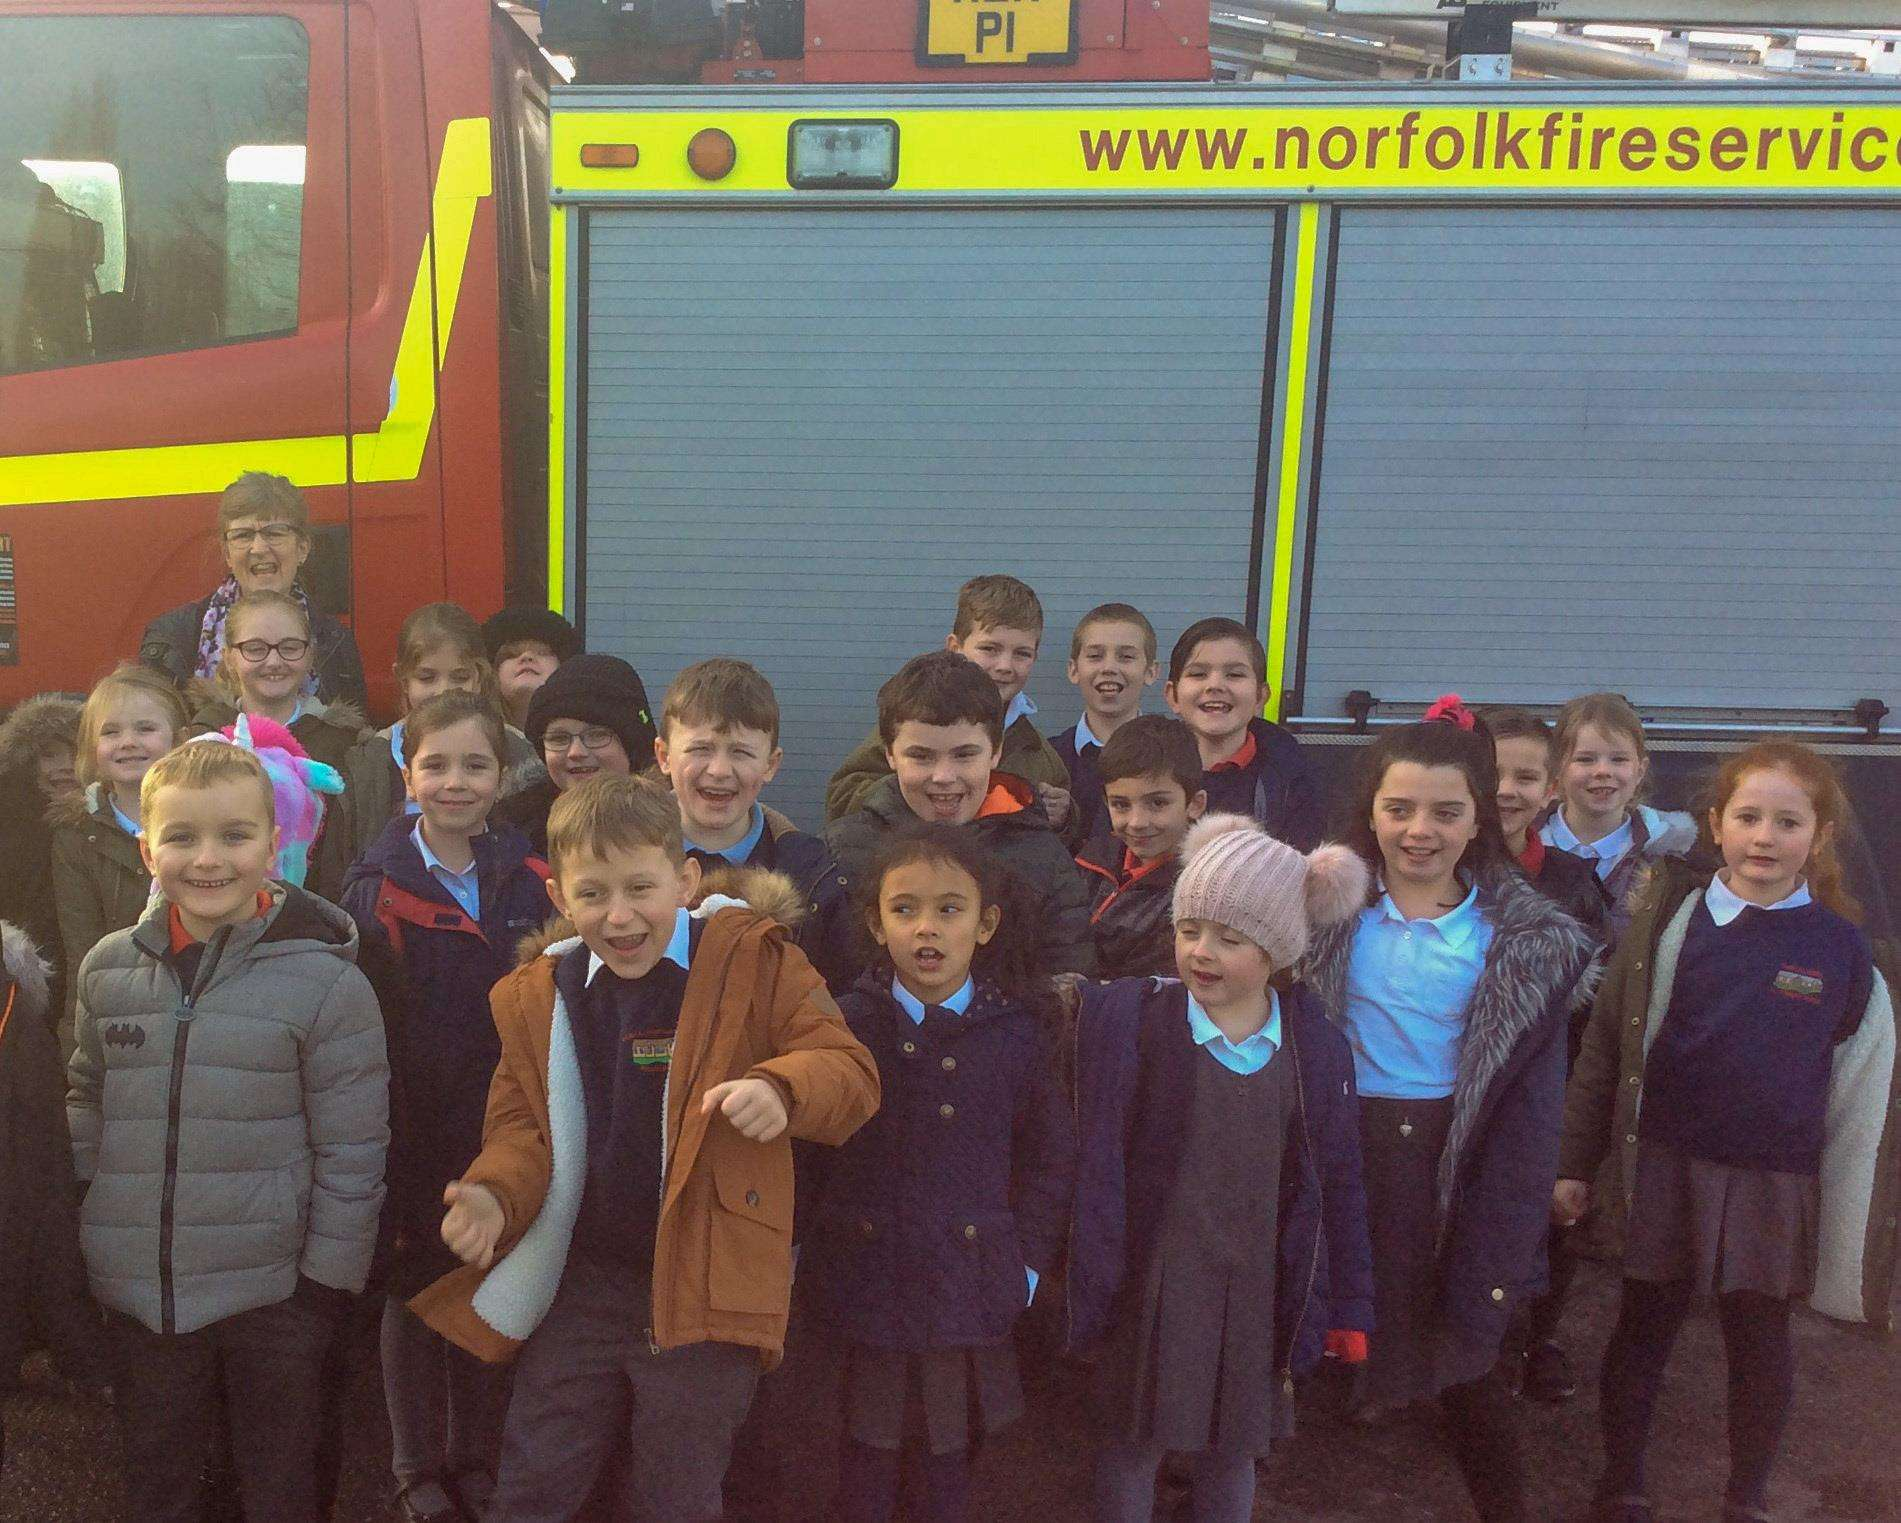 Pupils at Tilney All Saints school enjoyed a visit by King's Lynn firefighters and their fire engine. (7092956)